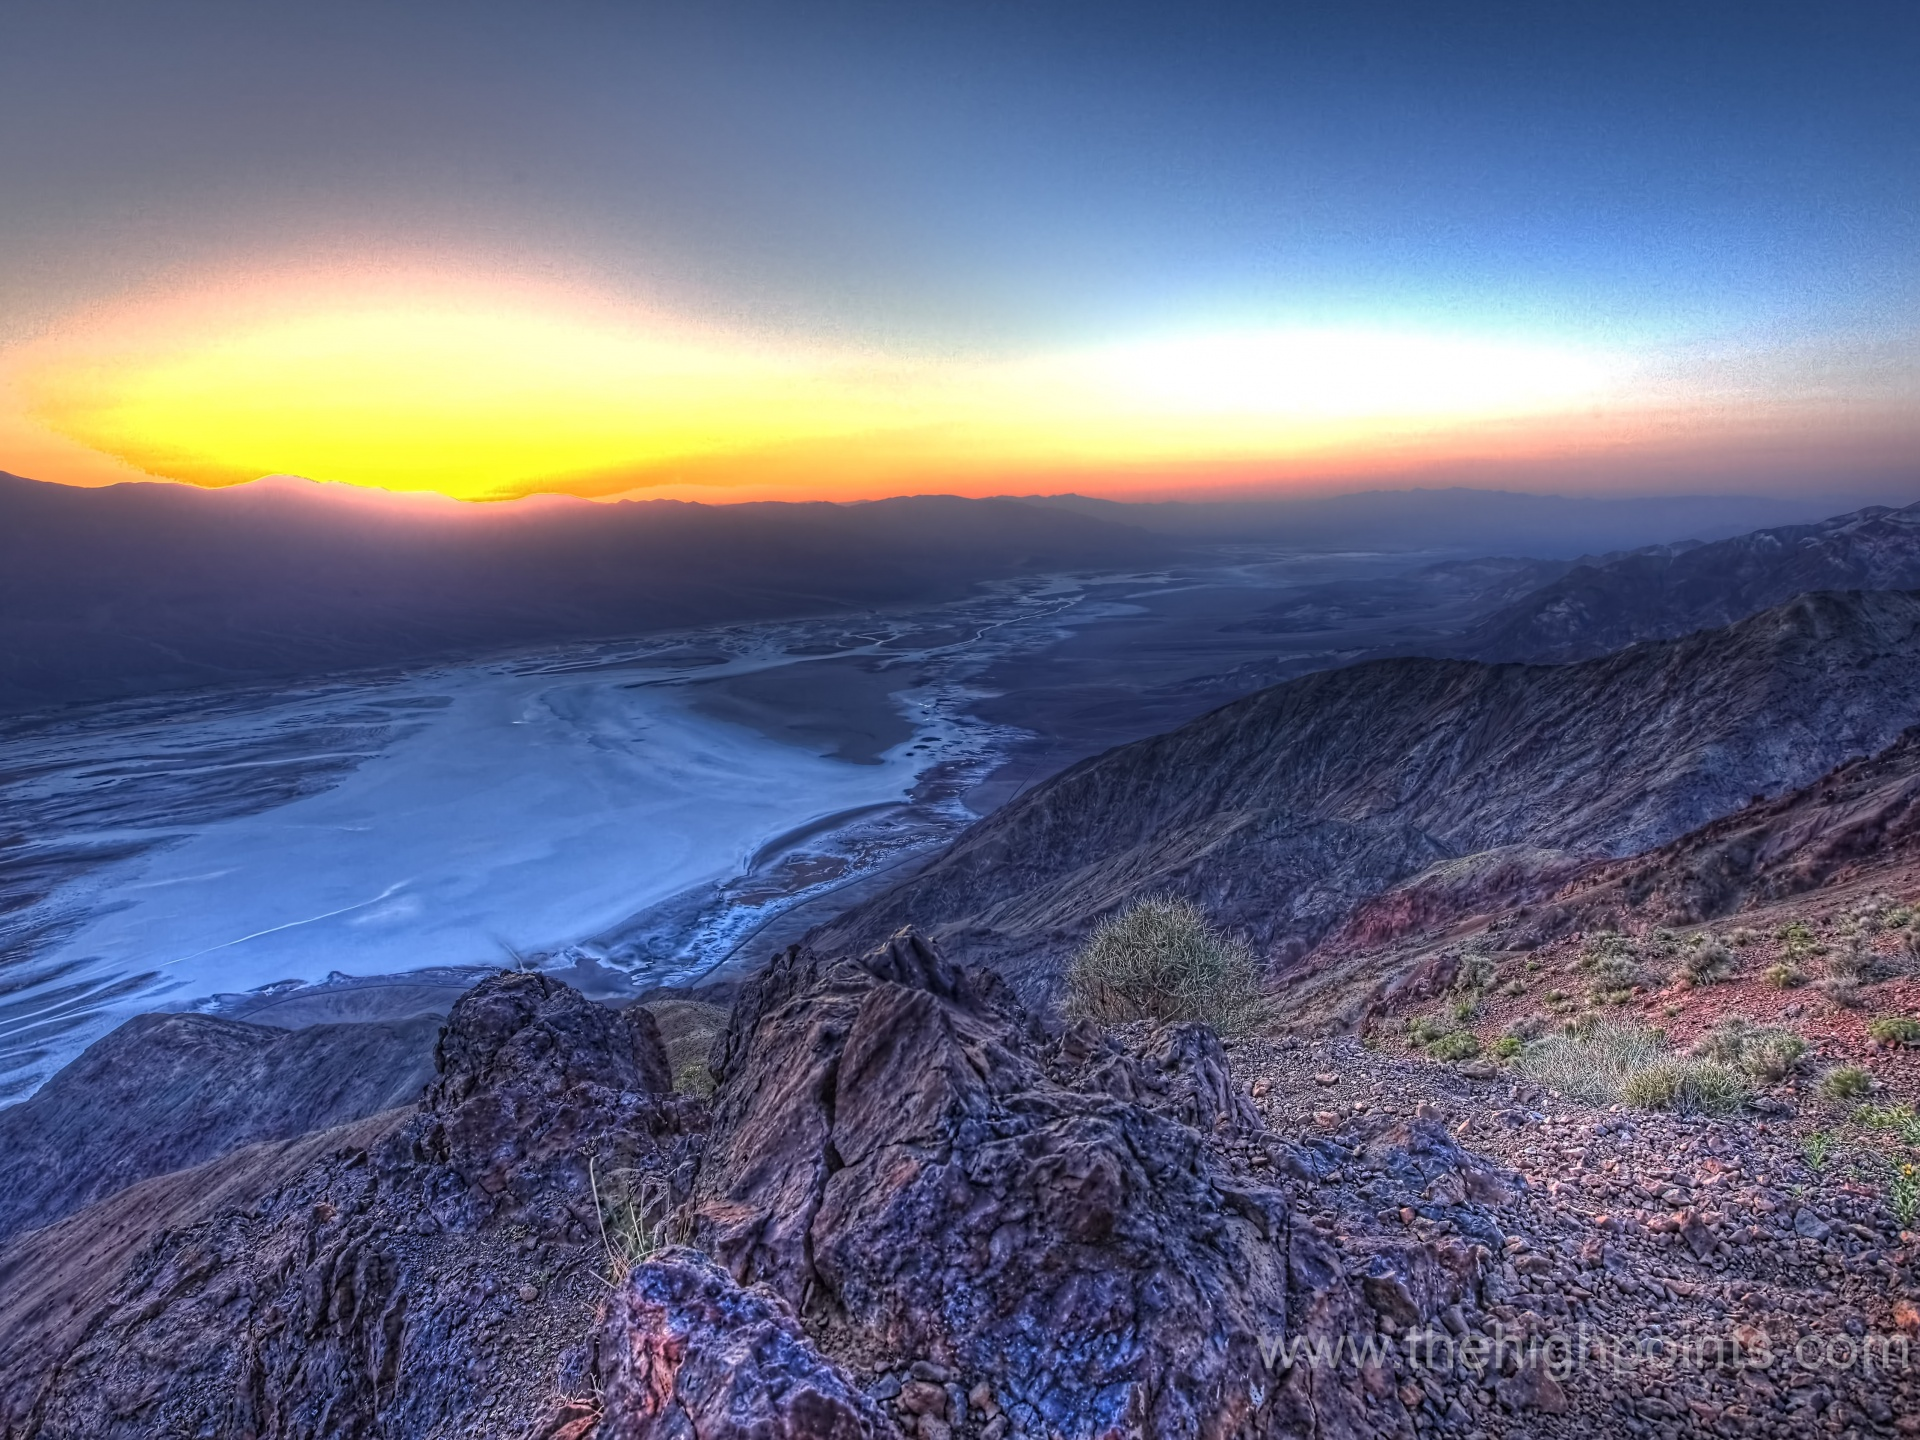 Dantes View Death Valley Wallpaper 1920x1440 ID24684 1920x1440